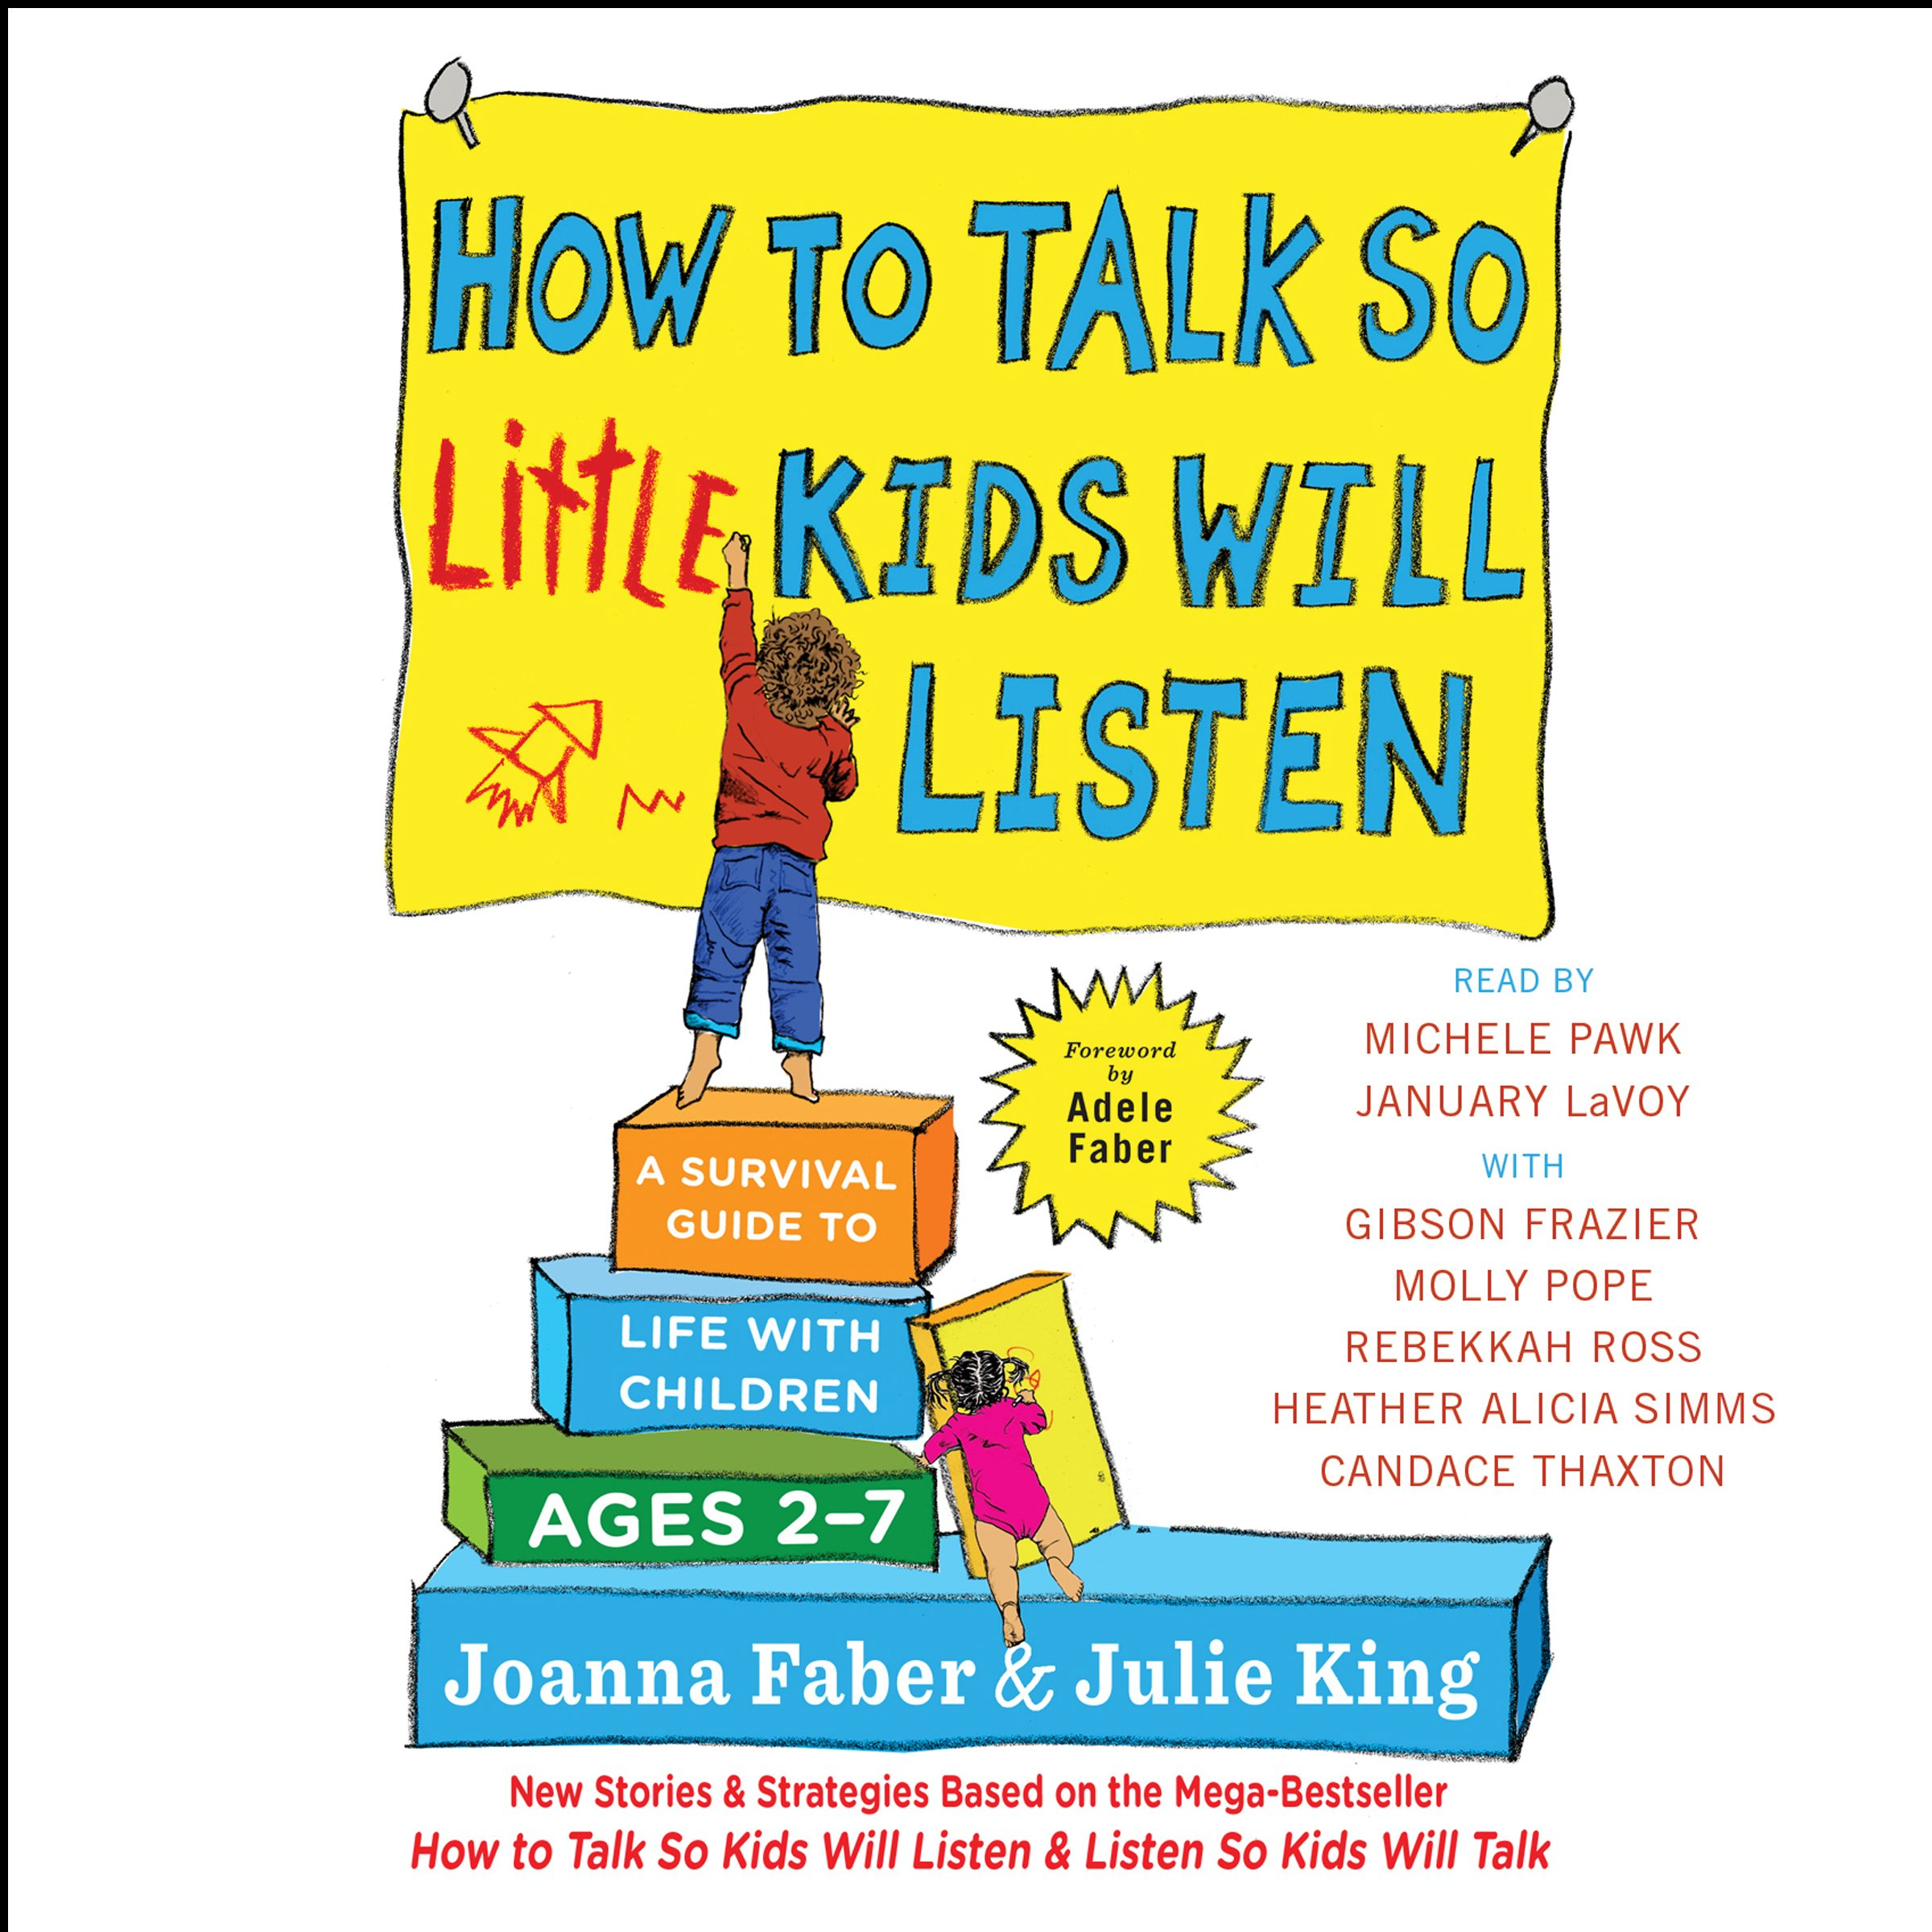 How To Talk So Little Kids Will Listen  A Survival Guide To Life With Children Ages 2 7